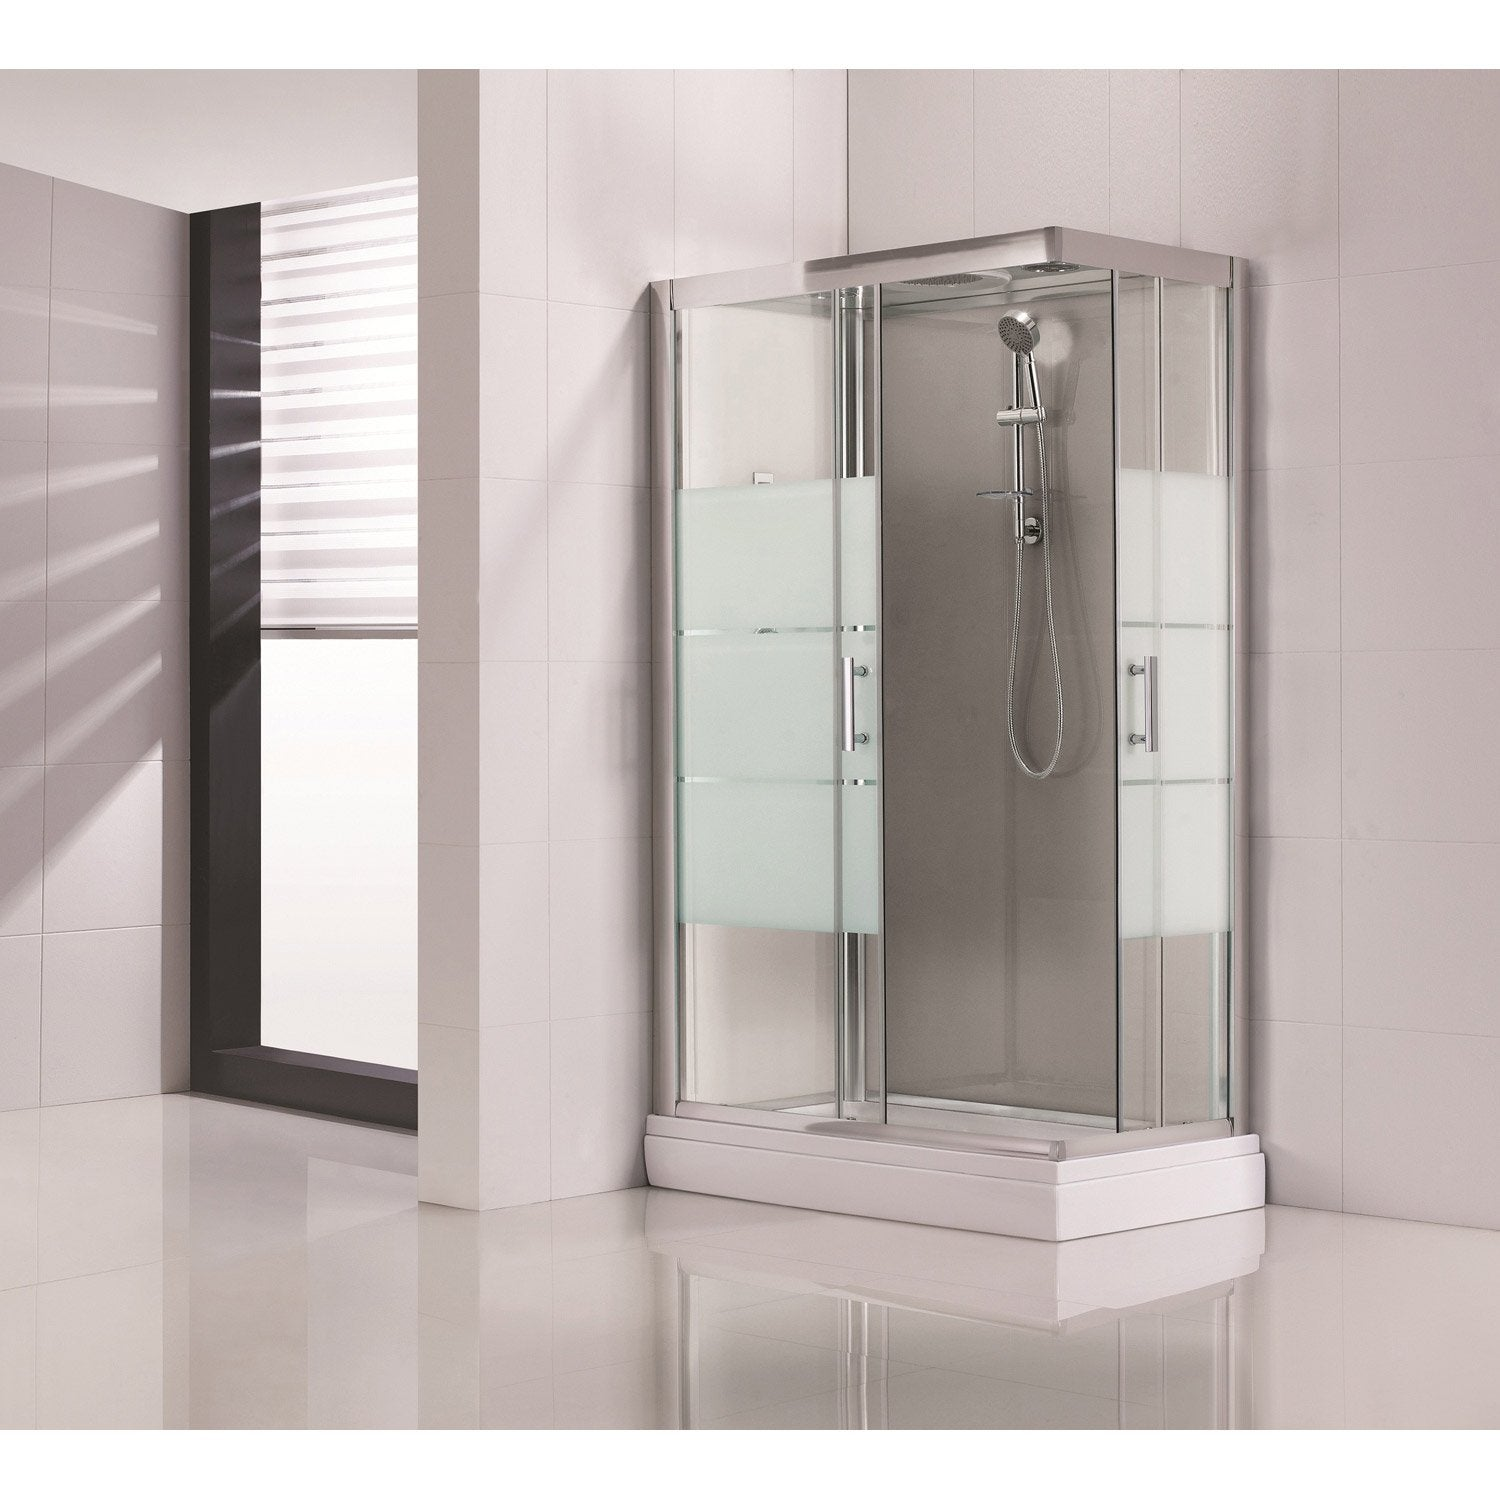 Cabine de douche rectangulaire 120x80 cm optima2 grise for Cabine de douche sans porte